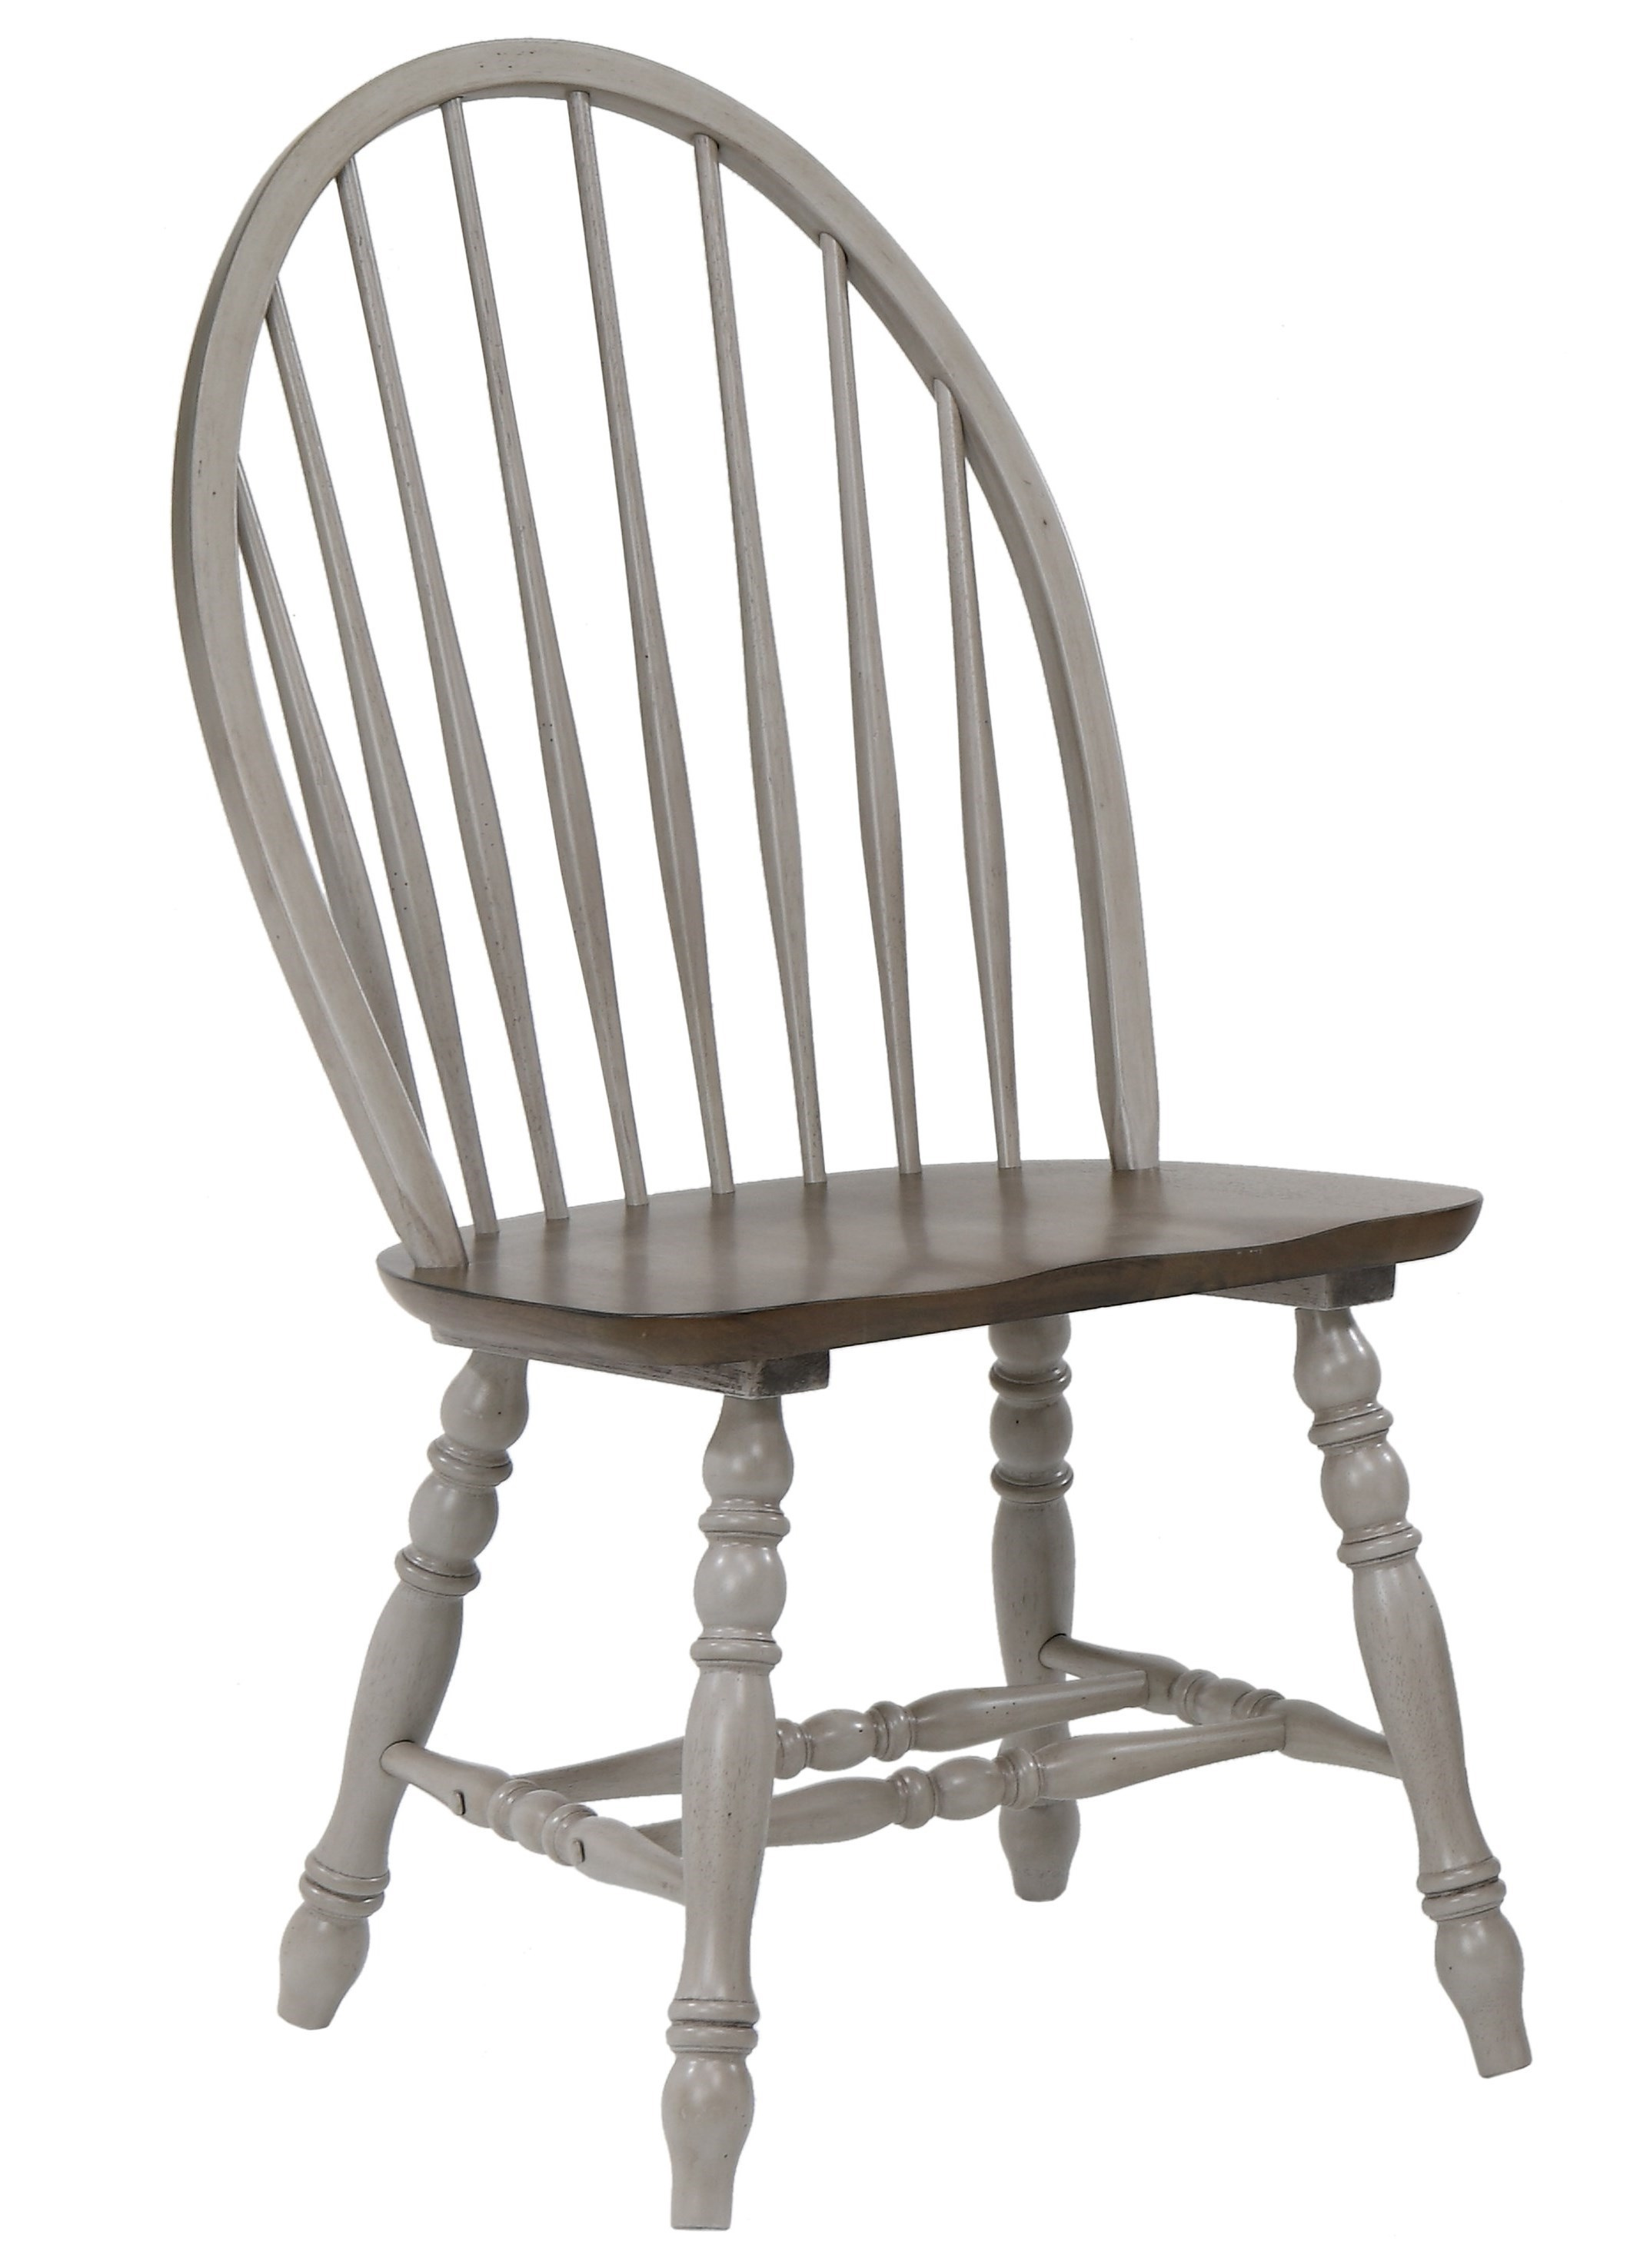 Jack Windsor Chair 1054S